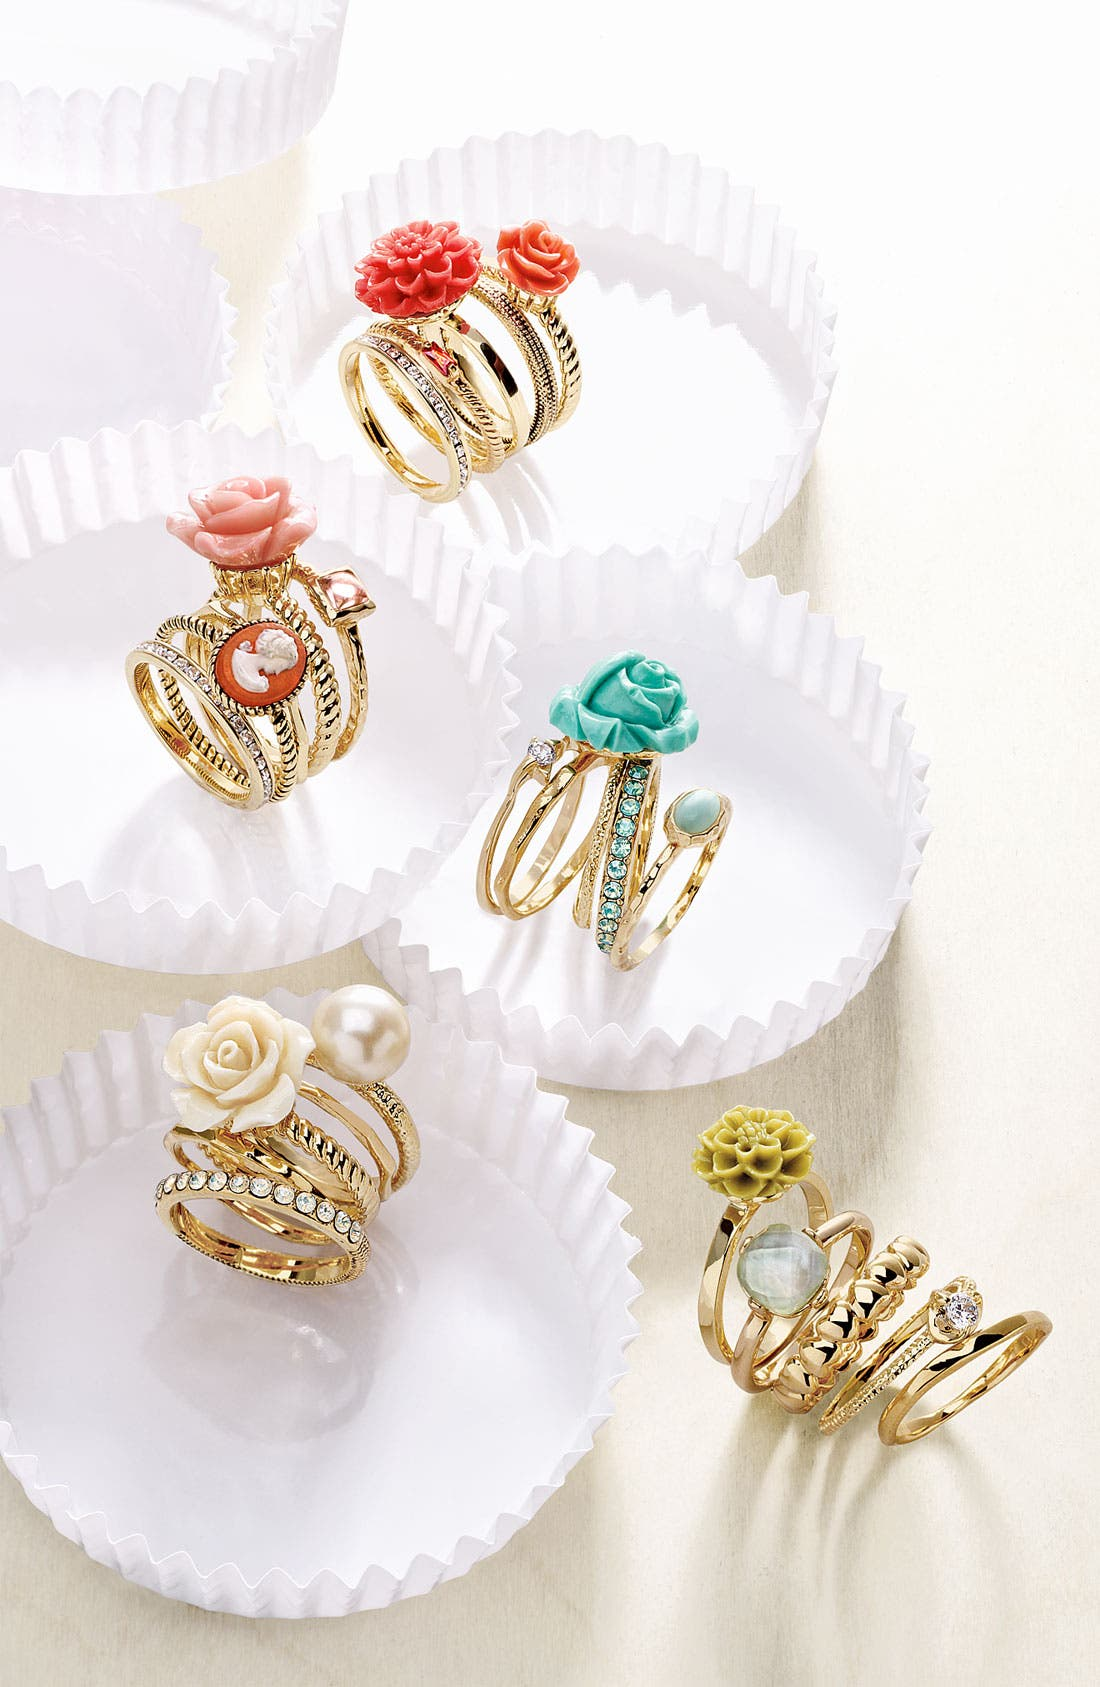 Alternate Image 3  - Ariella Collection Flower & Faux Pearl Stack Rings (Set of 5) (Nordstrom Exclusive)